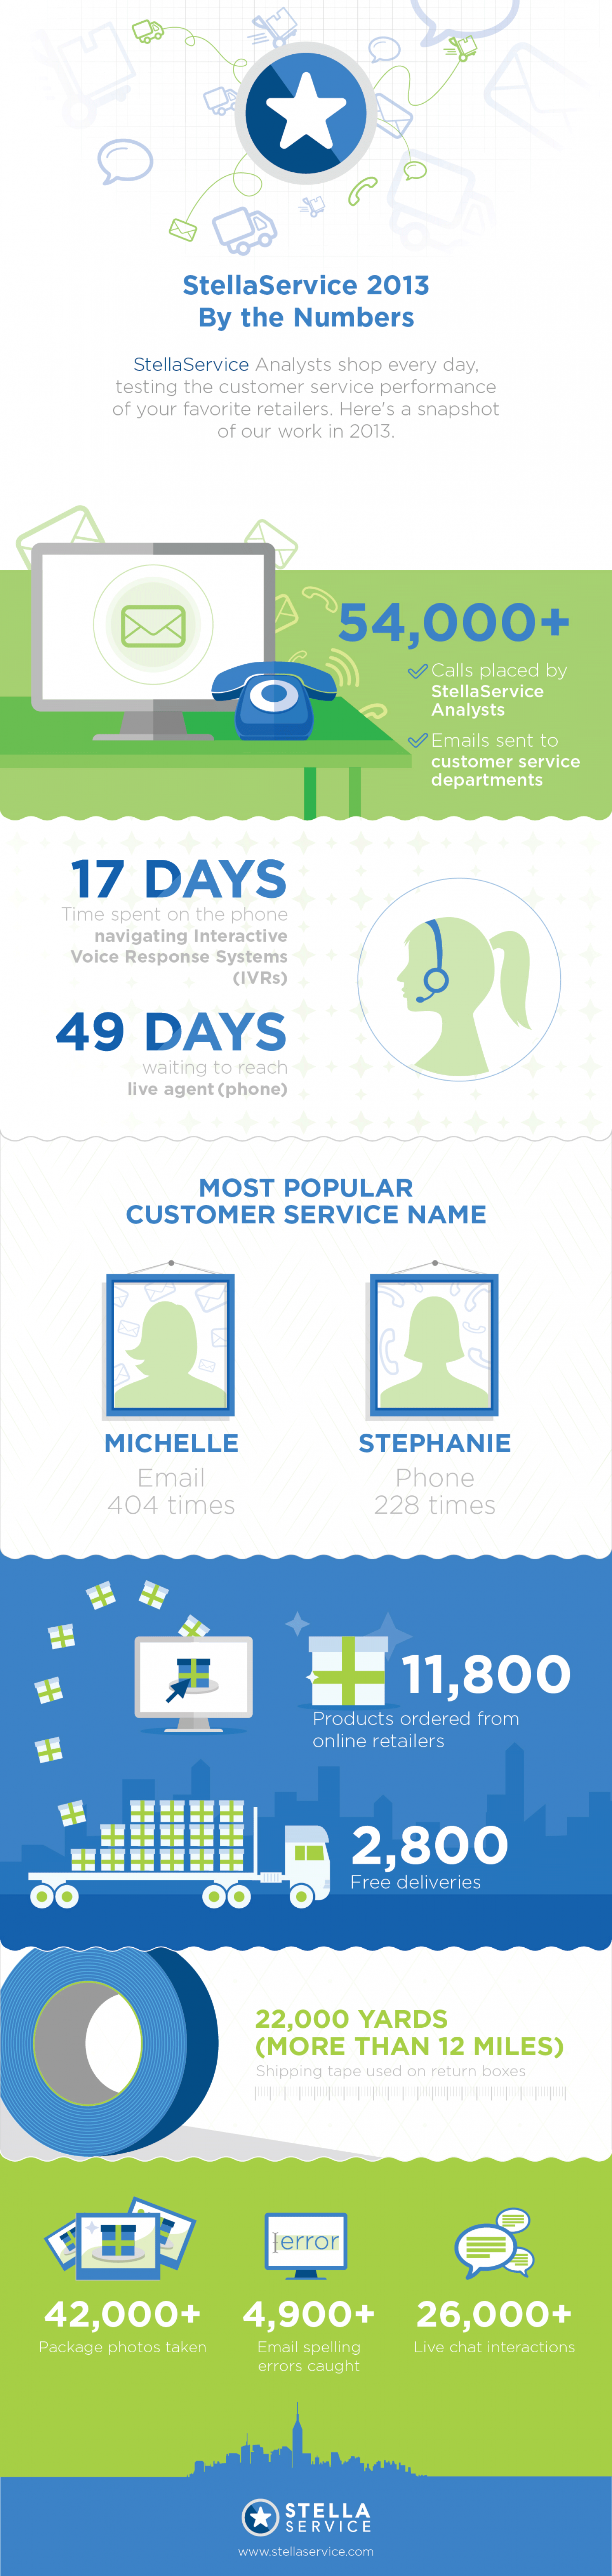 By the Numbers: StellaService Operations in 2013 Infographic